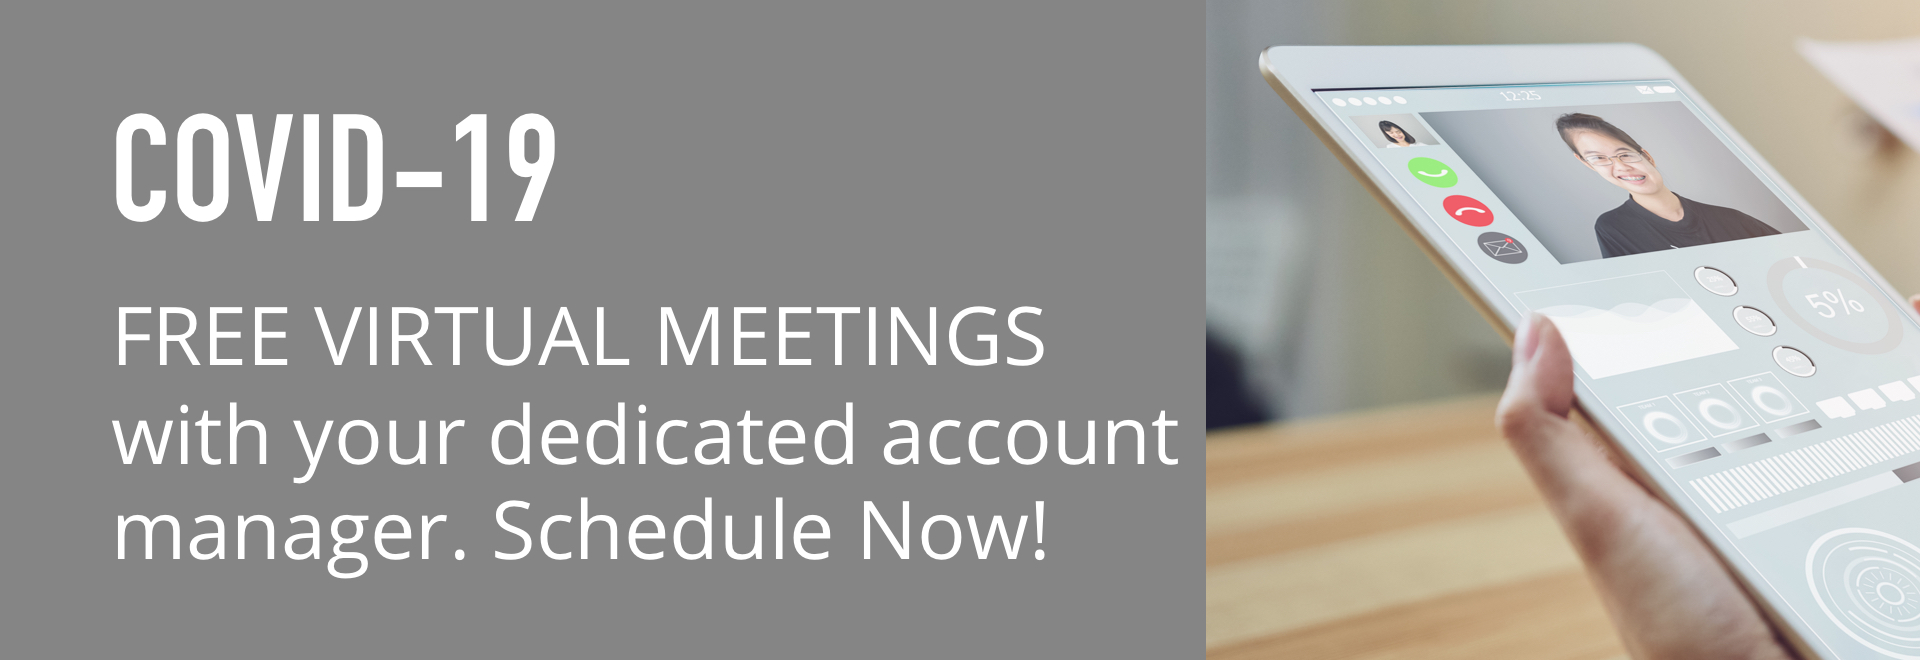 COVID-19. FREE VIRTUAL MEETINGS with your dedicated account manager. Schedule now!